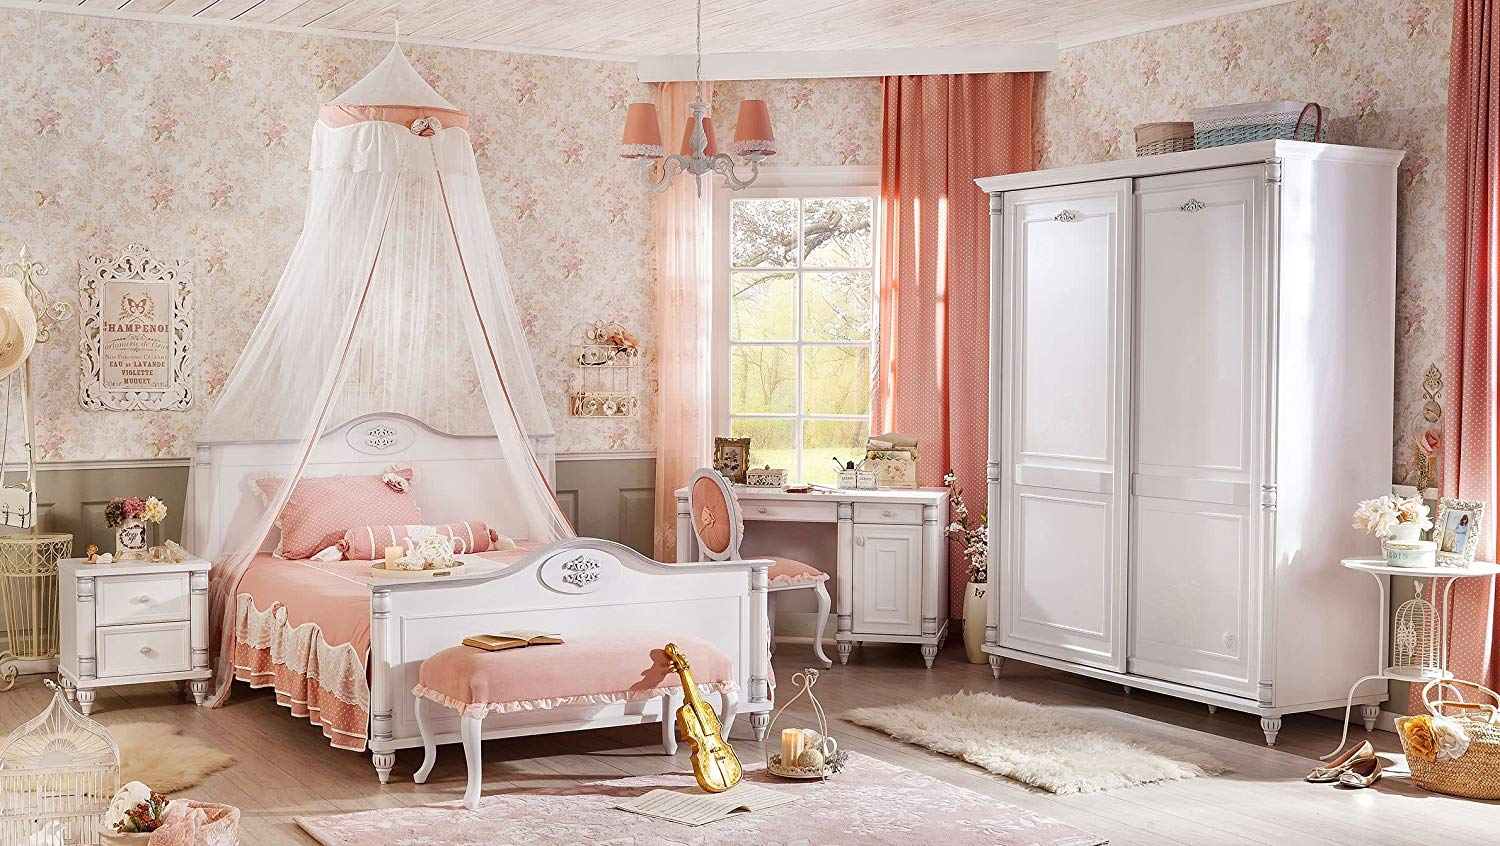 Dafnedesign.com - Children\'s bedroom - Composed by: Bed, canopy ...